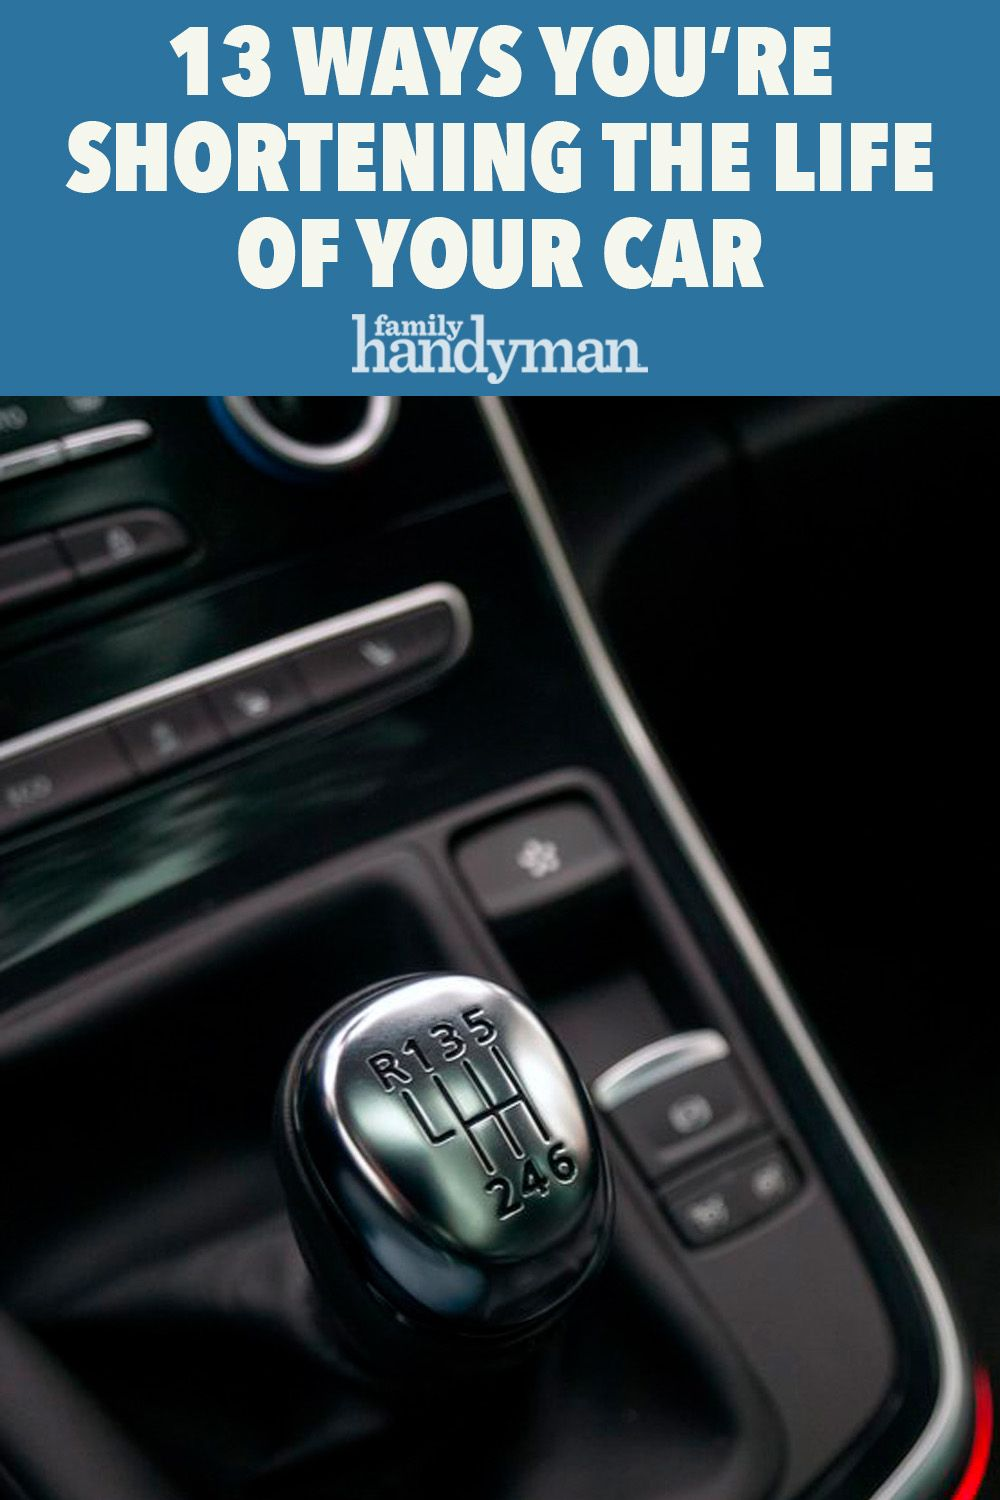 13 Ways You're Shortening the Life of Your Car